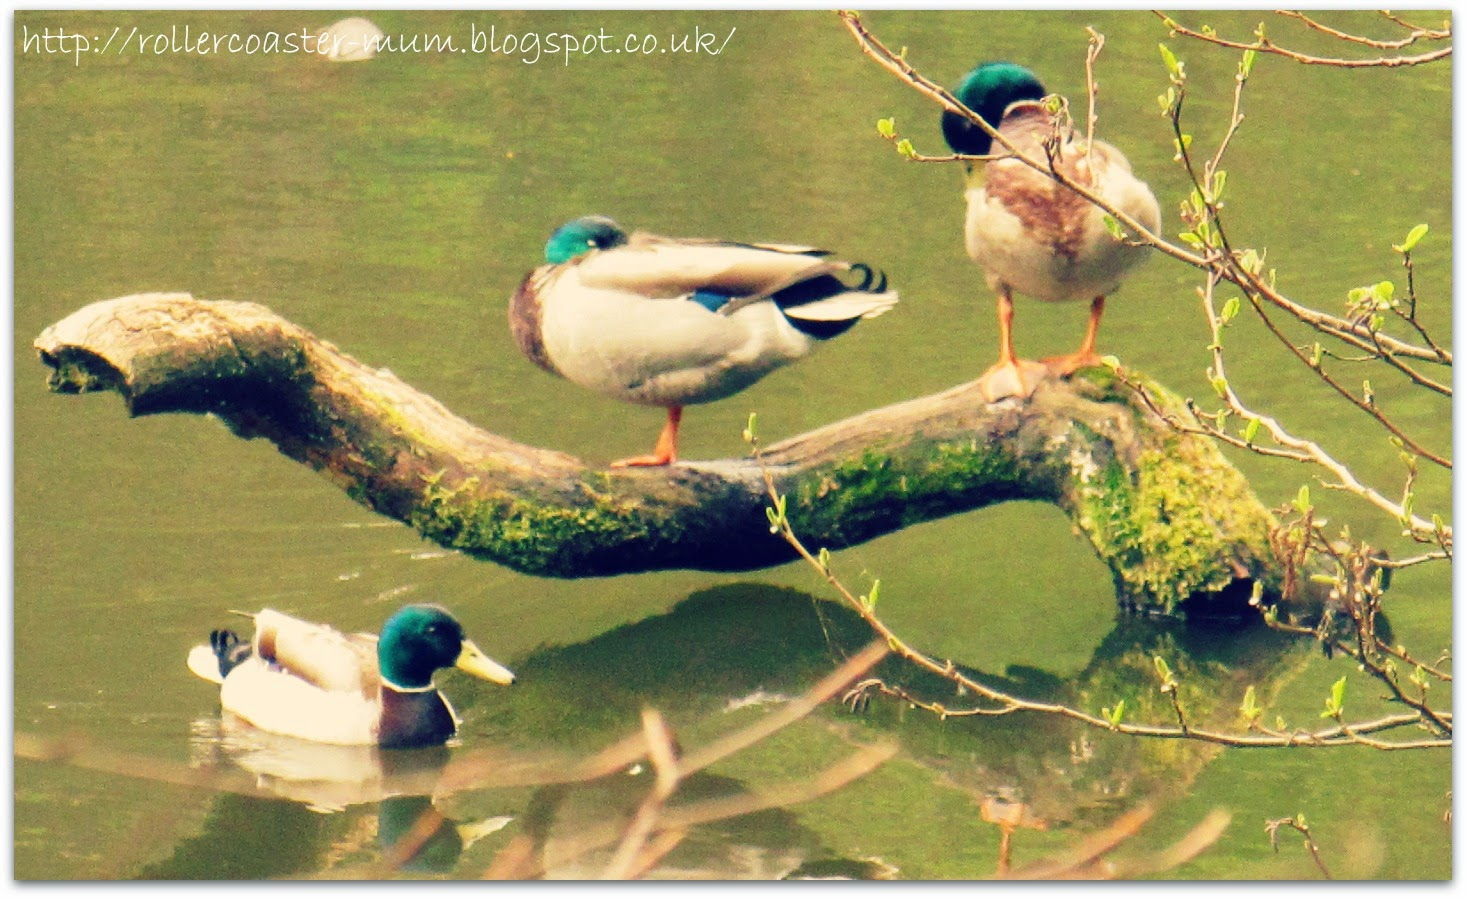 resting Mallard ducks at National Trust Waggoners Wells